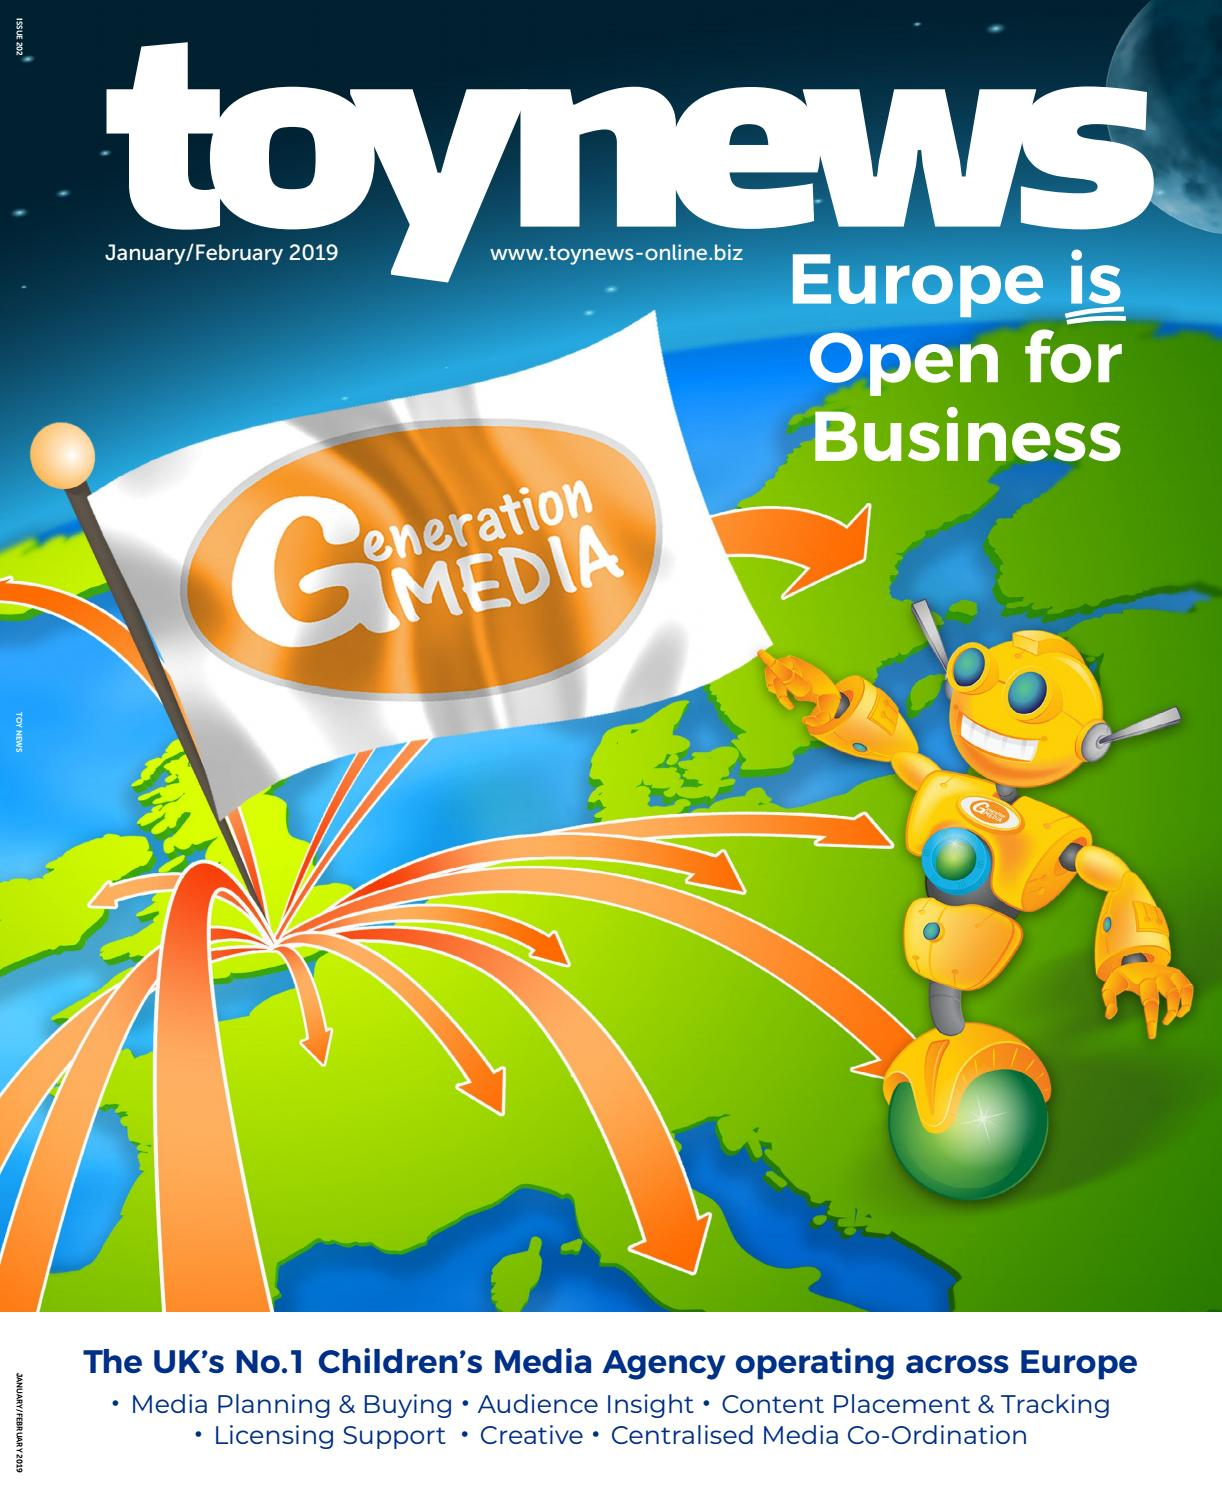 Toynews Januaryfebruary 2019 By Biz Media Ltd Issuu - roblox tower battles towers tier list community rank